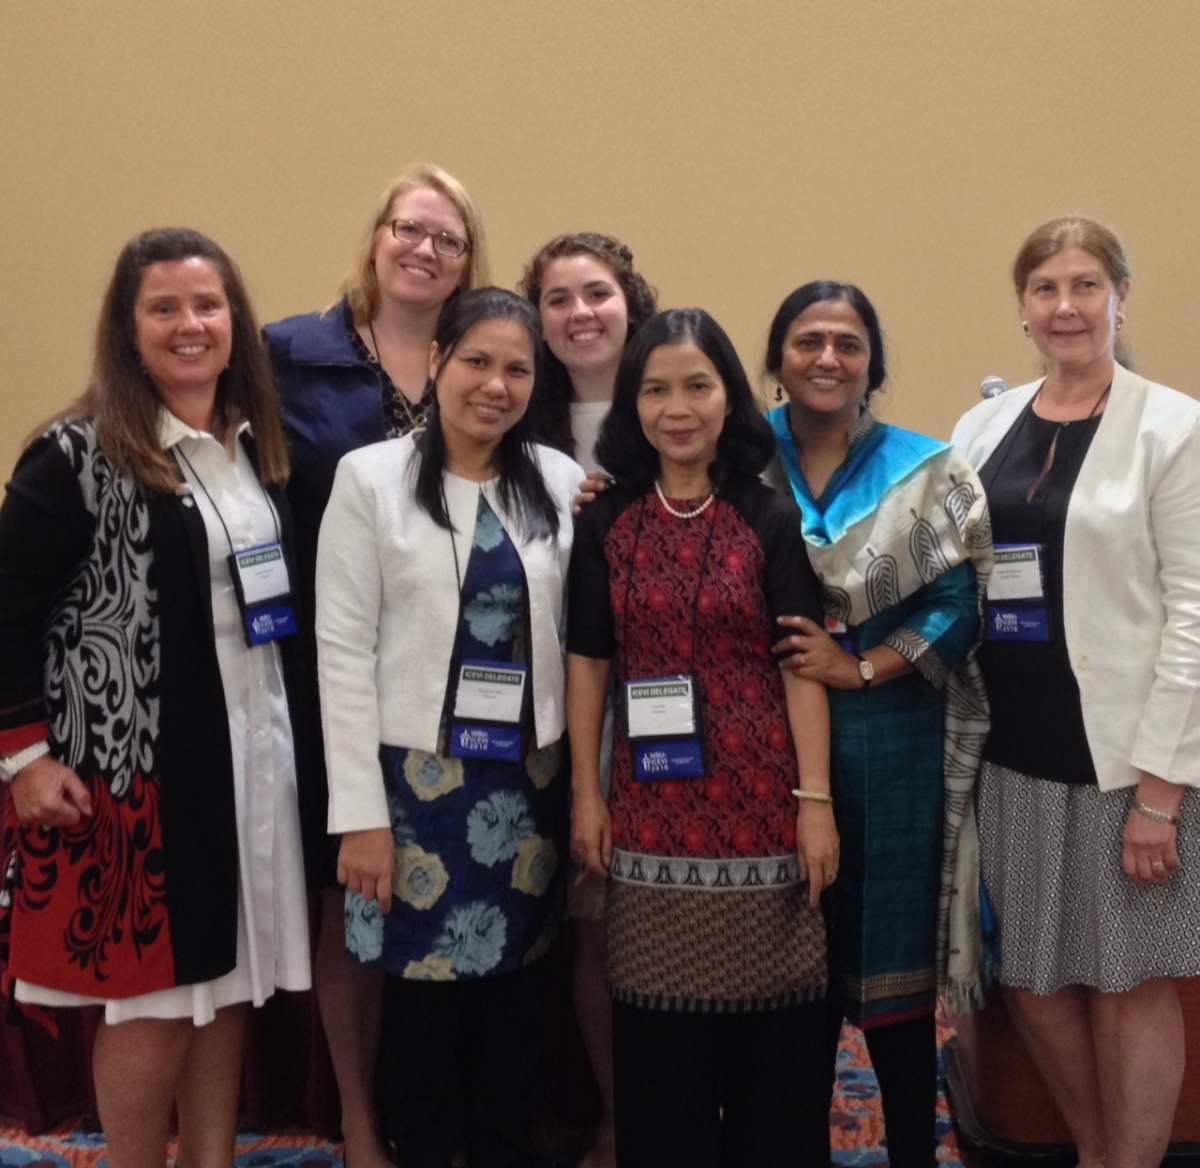 From left to right: Carolyn Monaco, Amy Parker, Nho Hoang Thi, Leanne Cook, My Cao Xuan, Nandini Rawal, Debbie Gleason